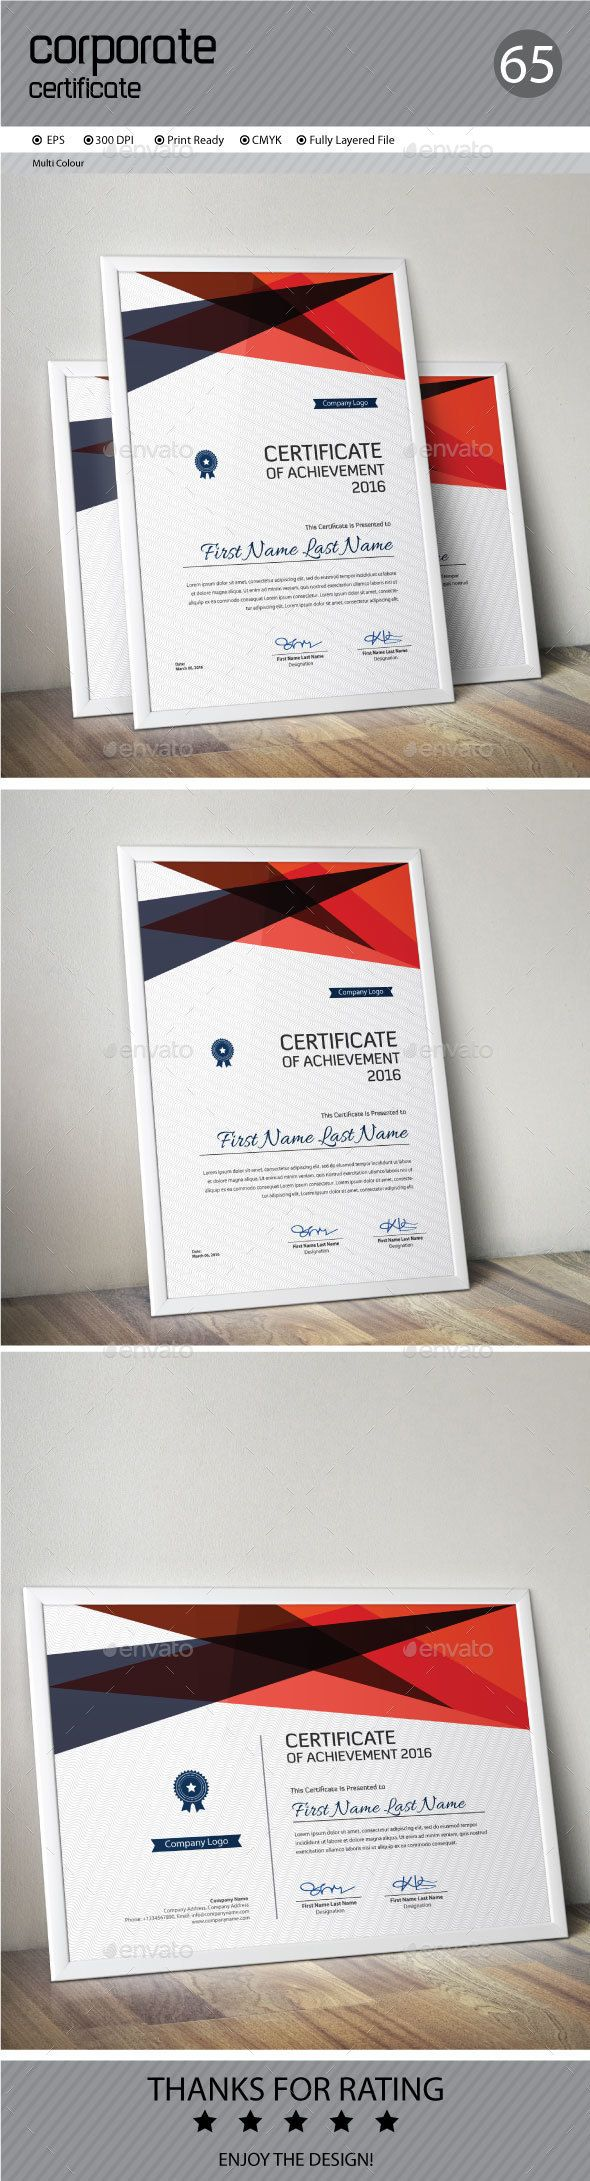 Certificate Template Vector EPS. Download here: http://graphicriver.net/item/certificate/15380198?ref=ksioks